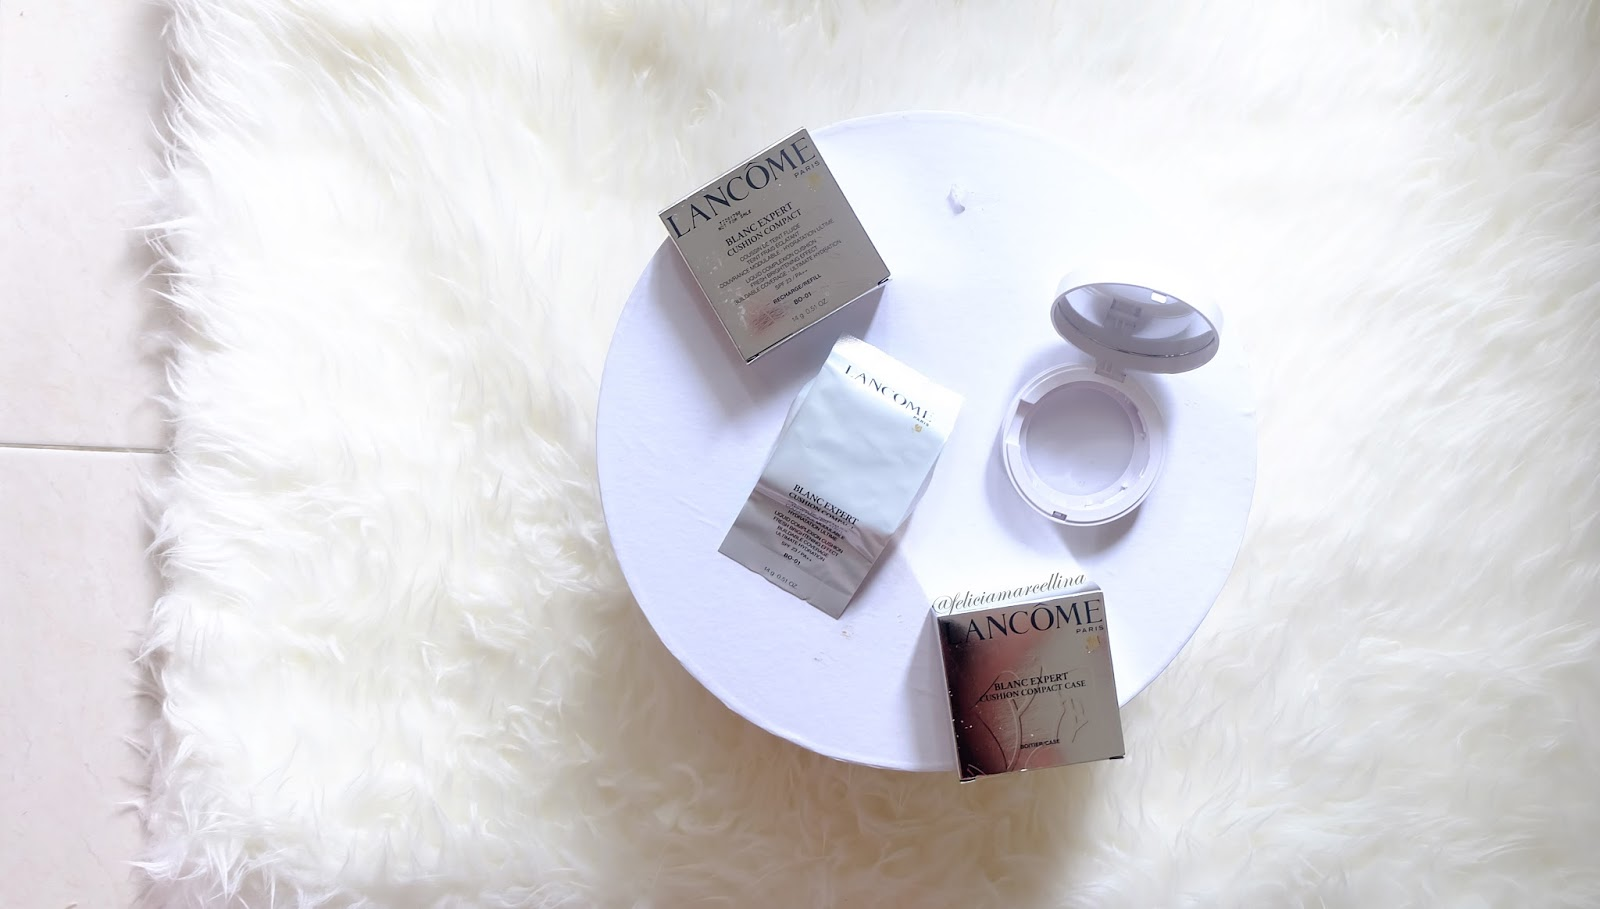 Feliciamarcellina Lancome Blanc Expert Compact Cushion Review Ultimate Whitening Purifying Foam 30ml